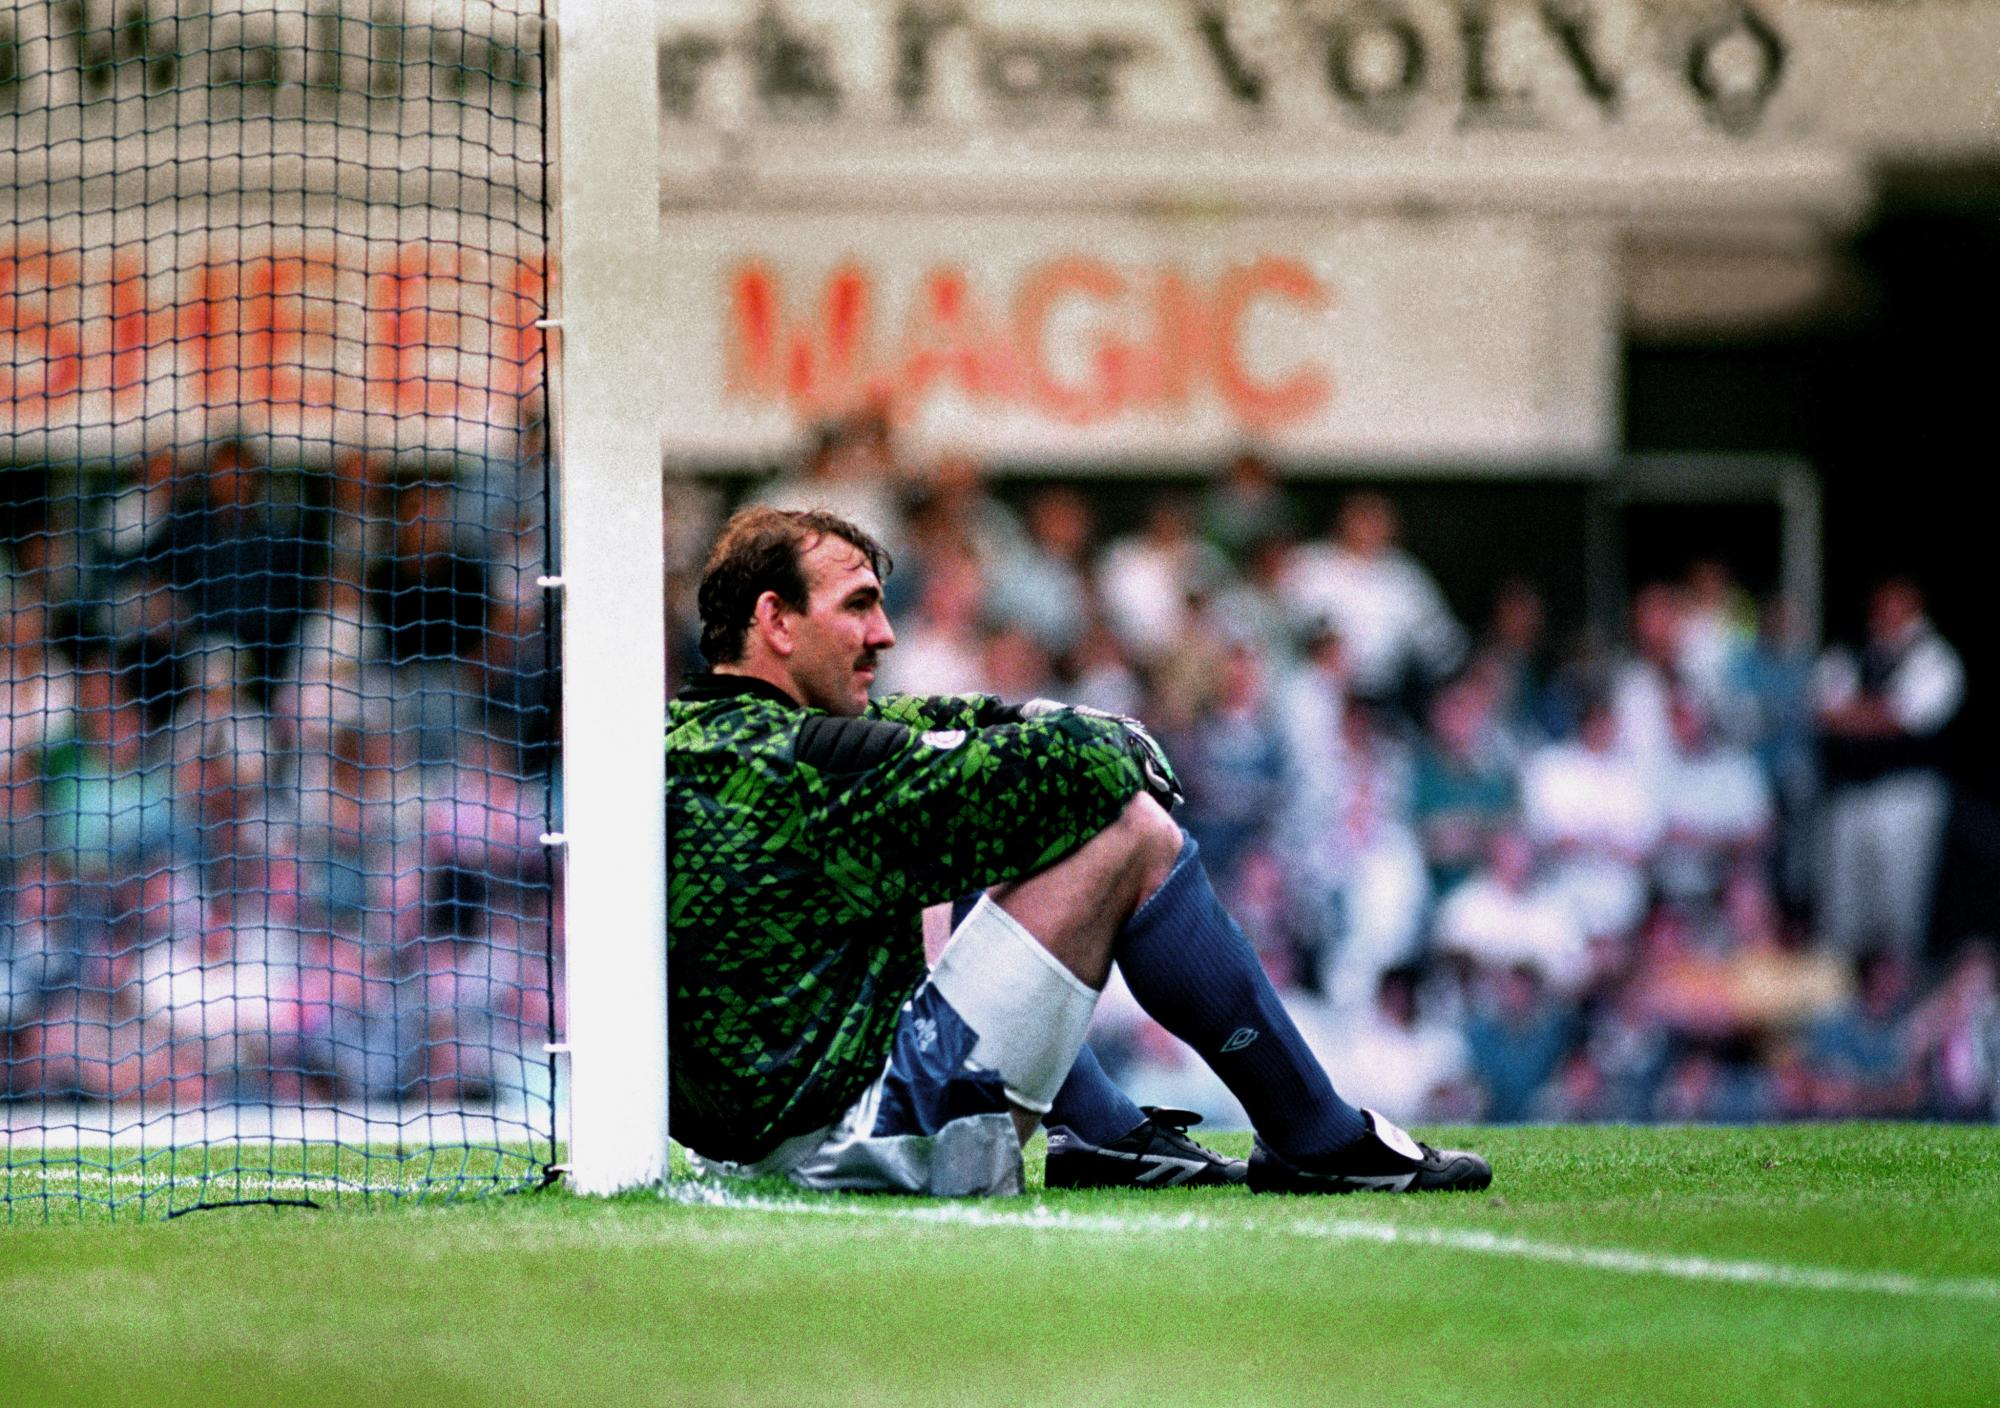 Why Everyman Neville Southall Is Our Greatest Living Welshman